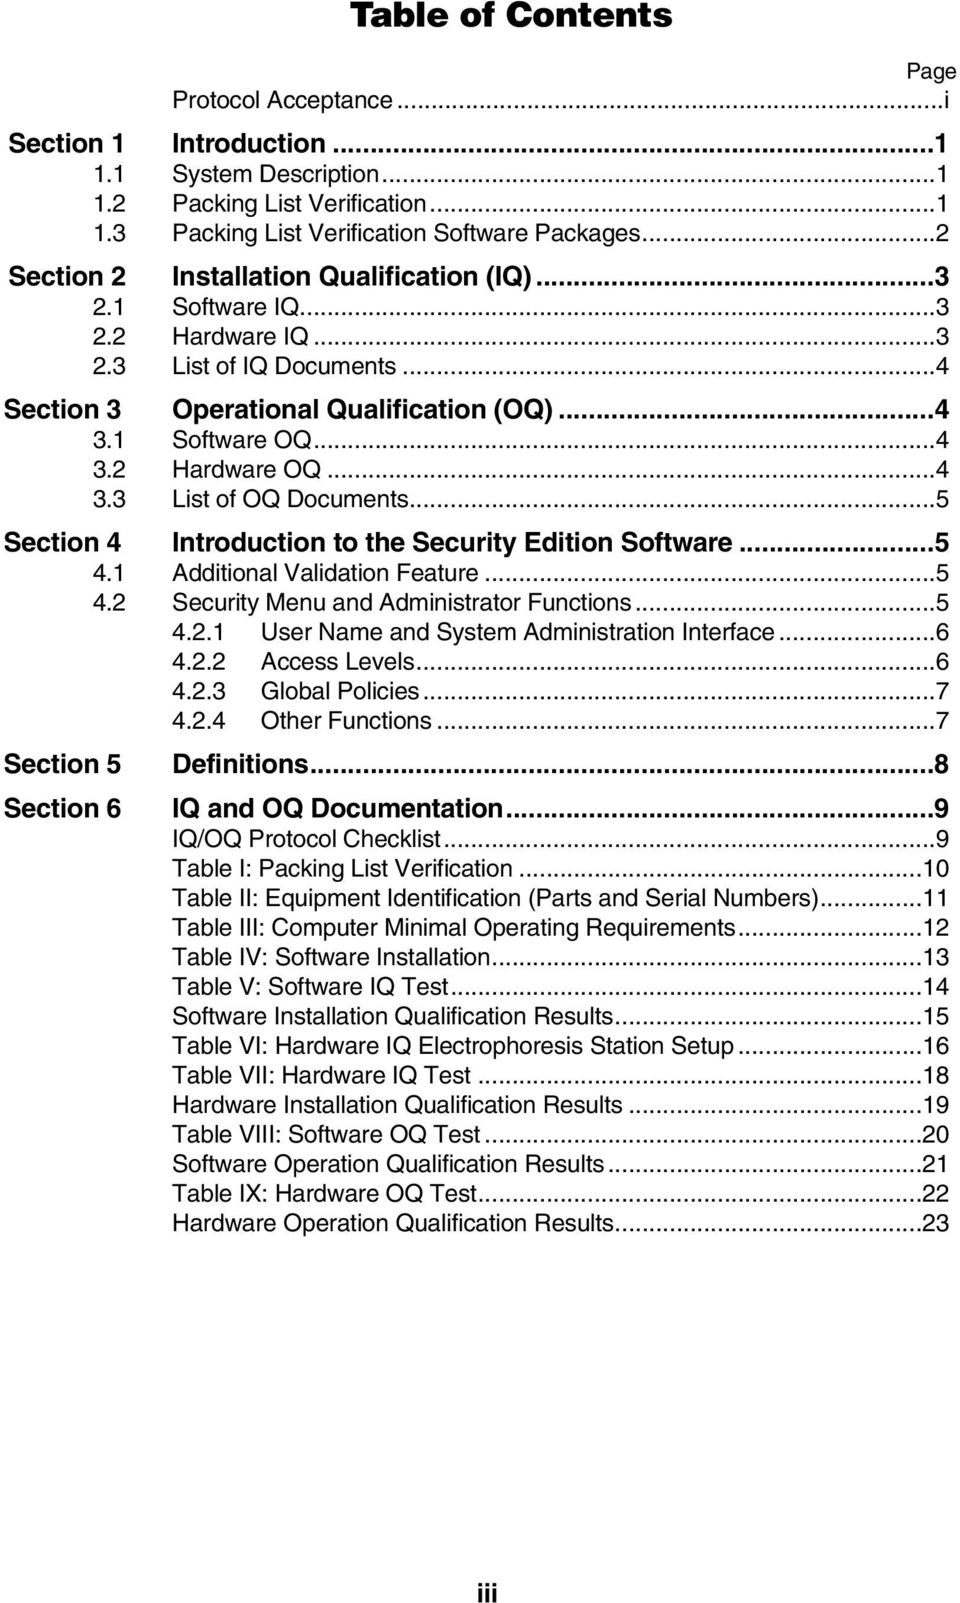 ..4 3.3 List of OQ Documents...5 Section 4 Introduction to the Security Edition Software...5 4.1 Additional Validation Feature...5 4.2 Security Menu and Administrator Functions...5 4.2.1 User Name and System Administration Interface.